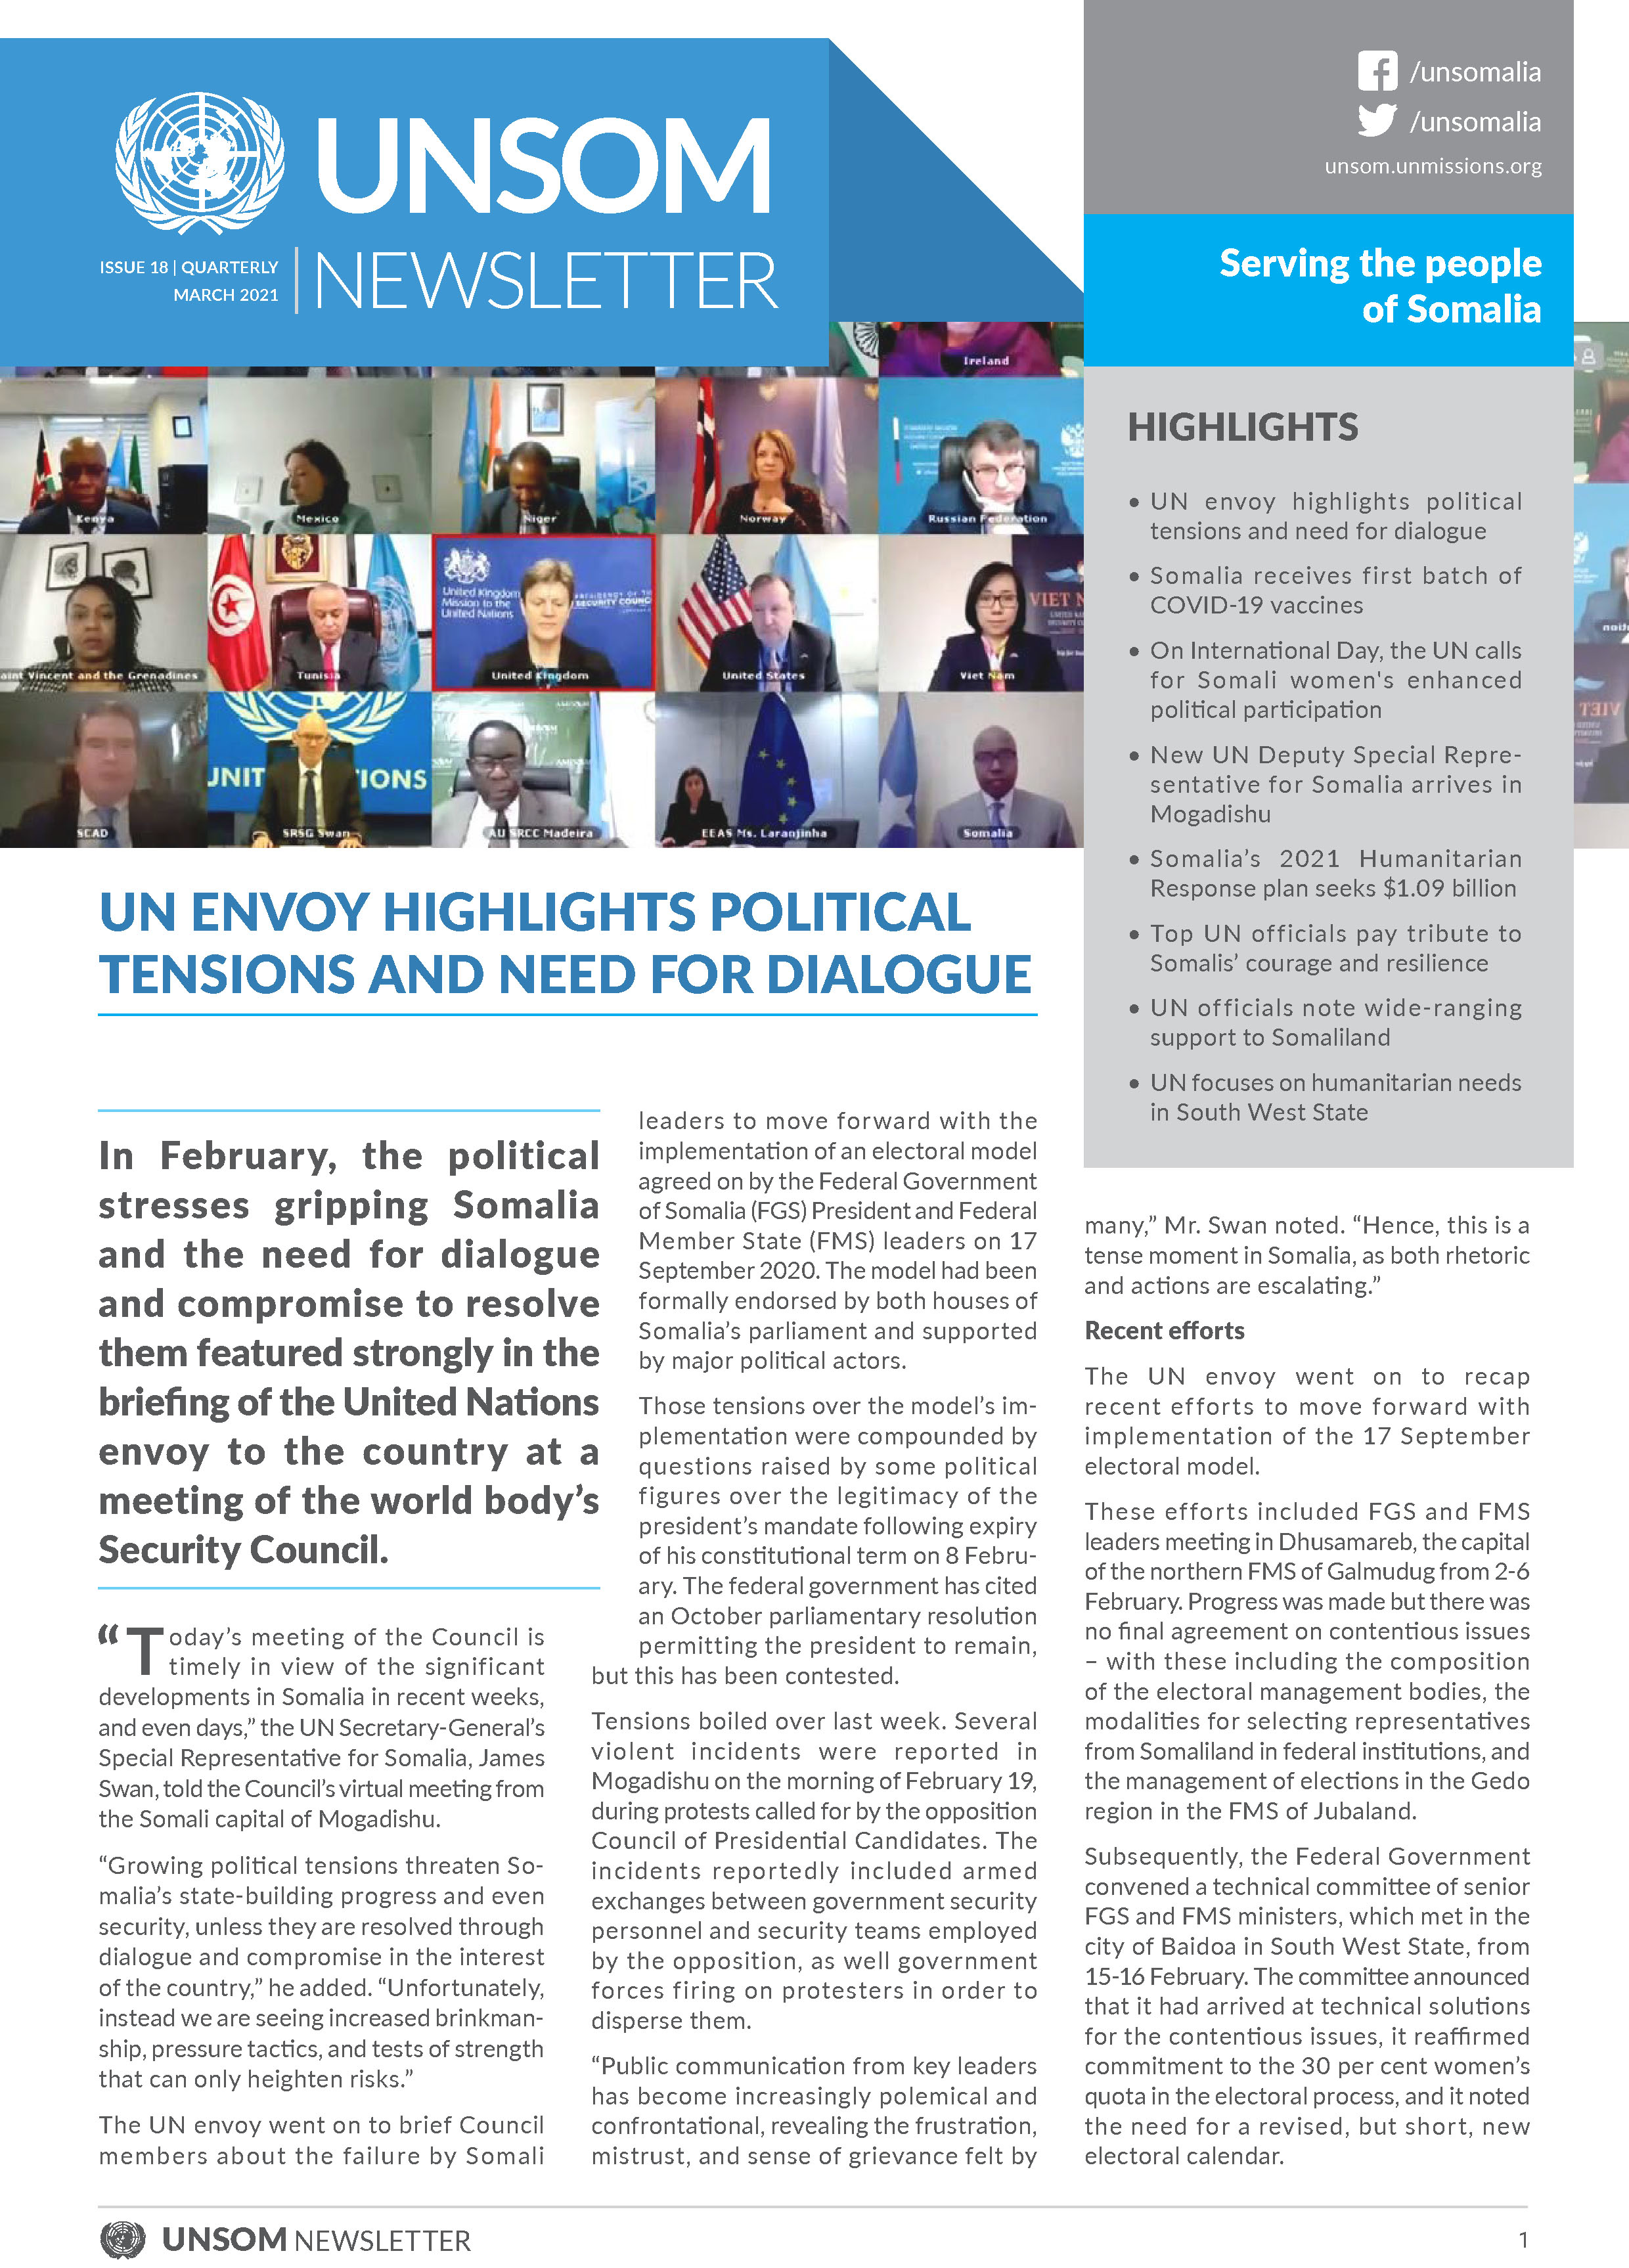 UNSOM Quarterly Newsletter, Issue 18, March 2021